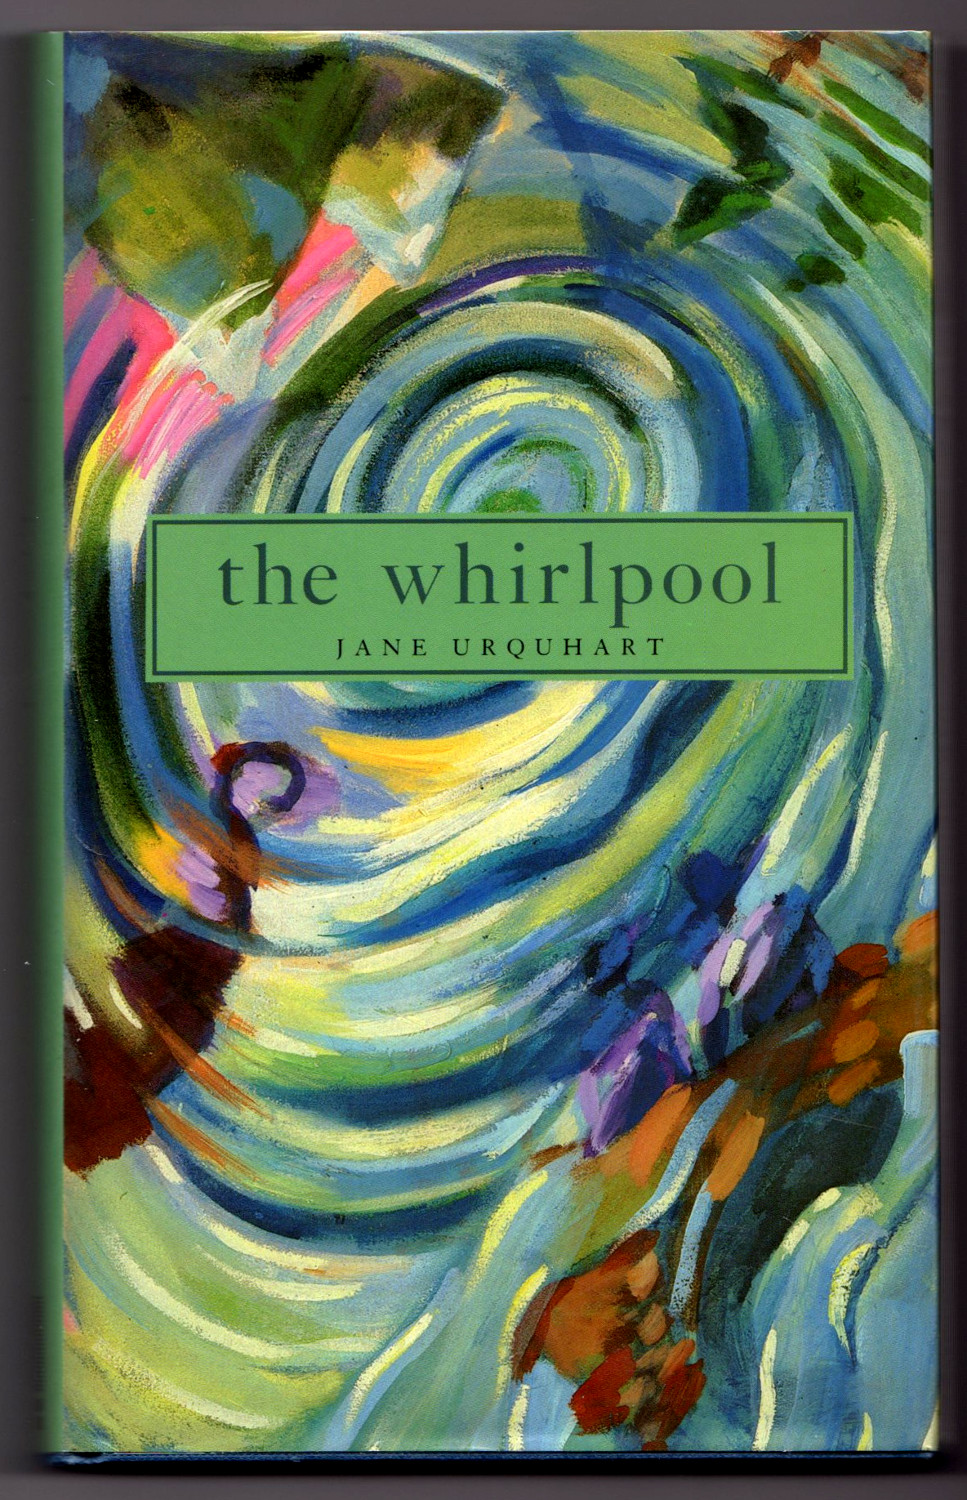 https://www.brownanddickson.com/lit/the-whirlpool